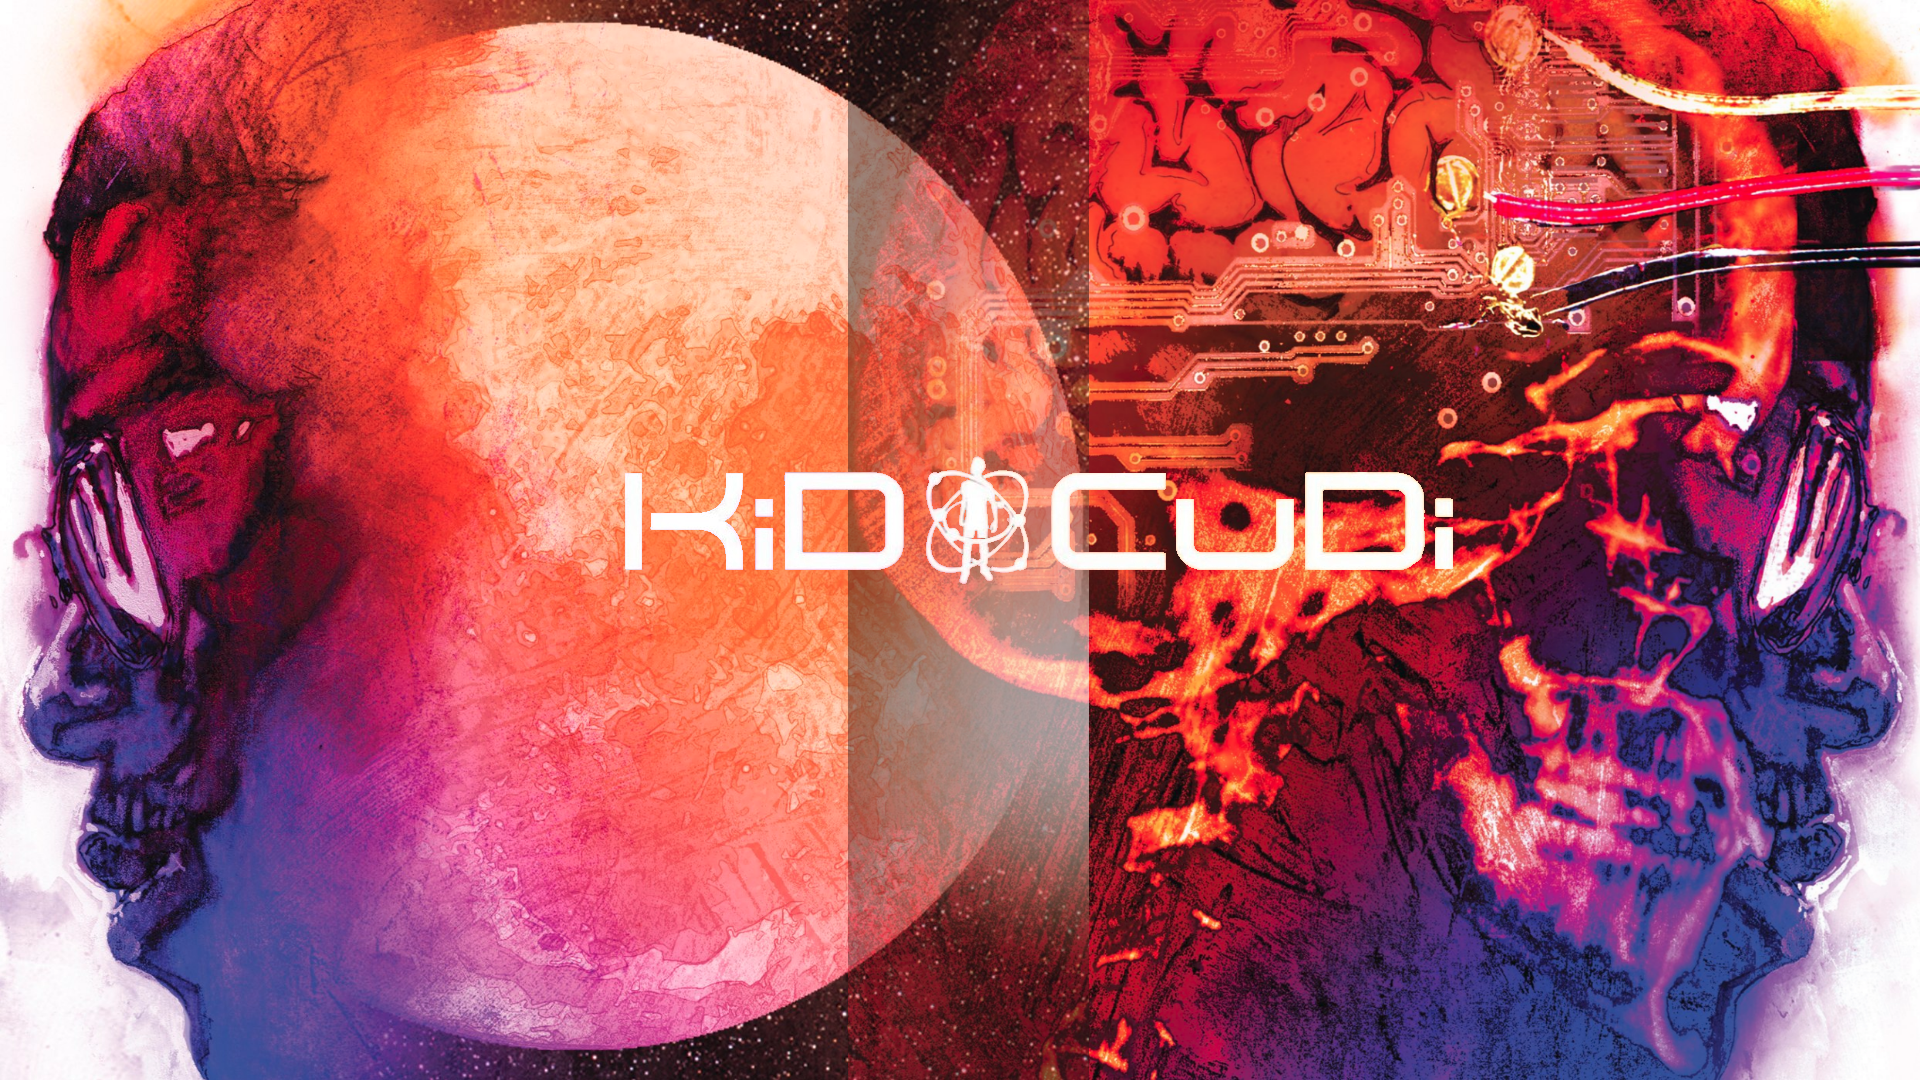 Kid Cudi Man On The Moon Wallpaper By Killeraxolotl On Deviantart